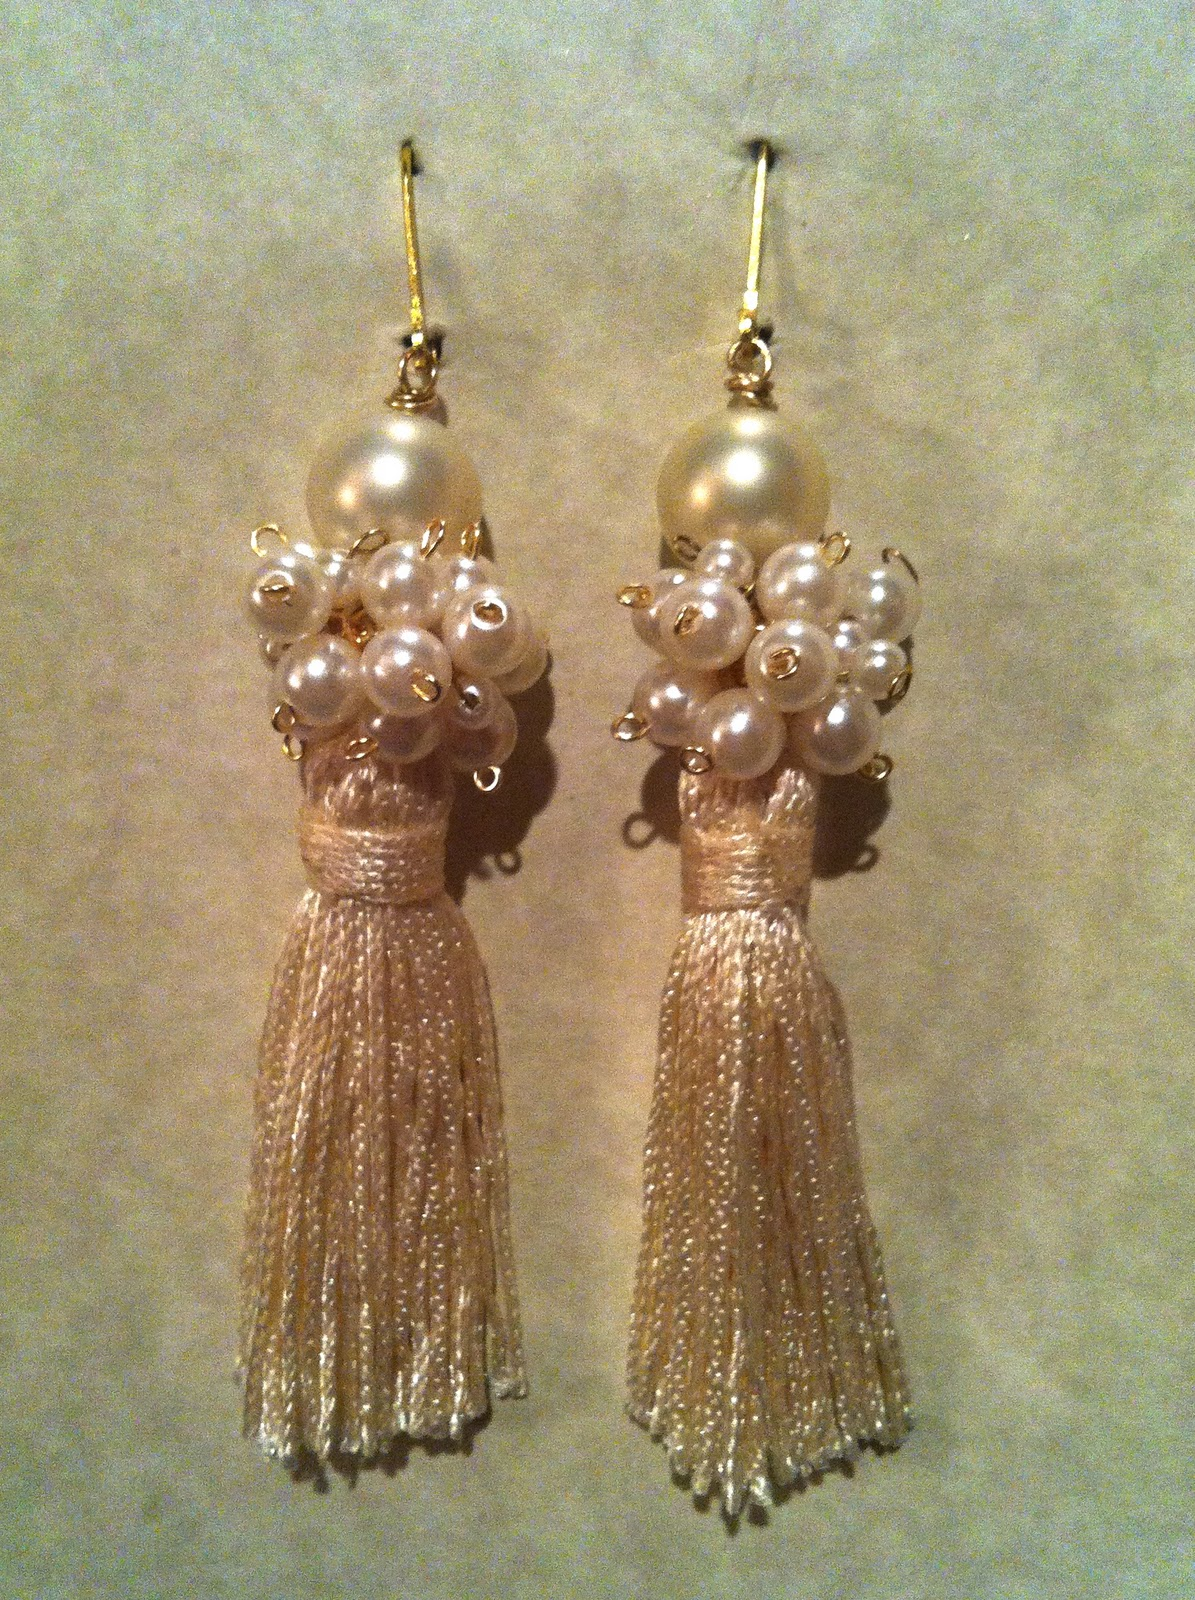 DIY - Anthropologie Inspired Tassel Earring Tutorial